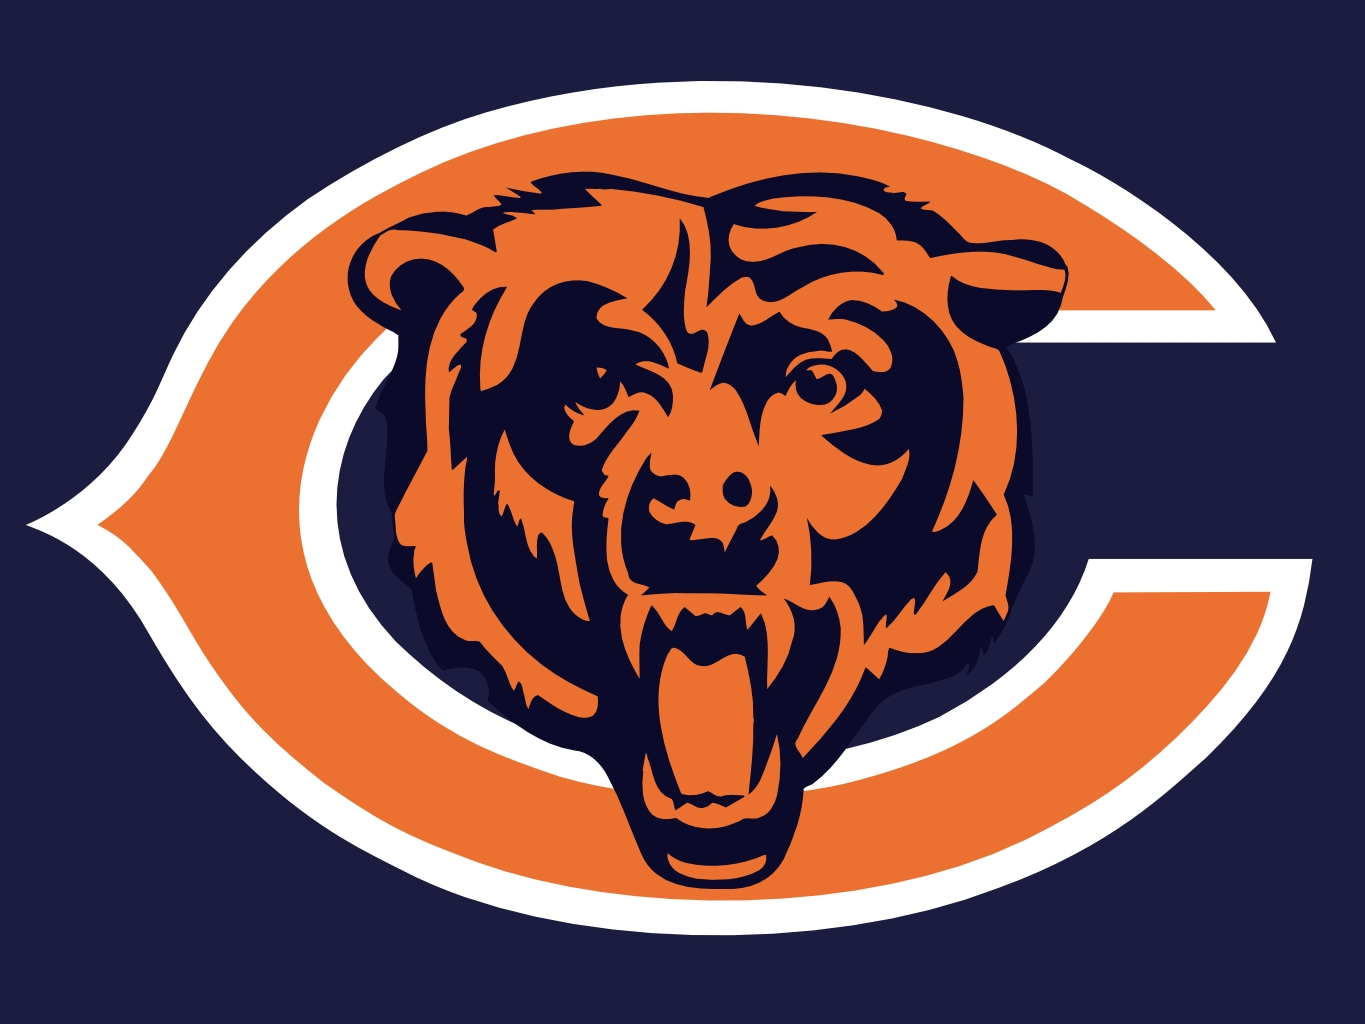 Chicago_Bears_Logo1.jpg